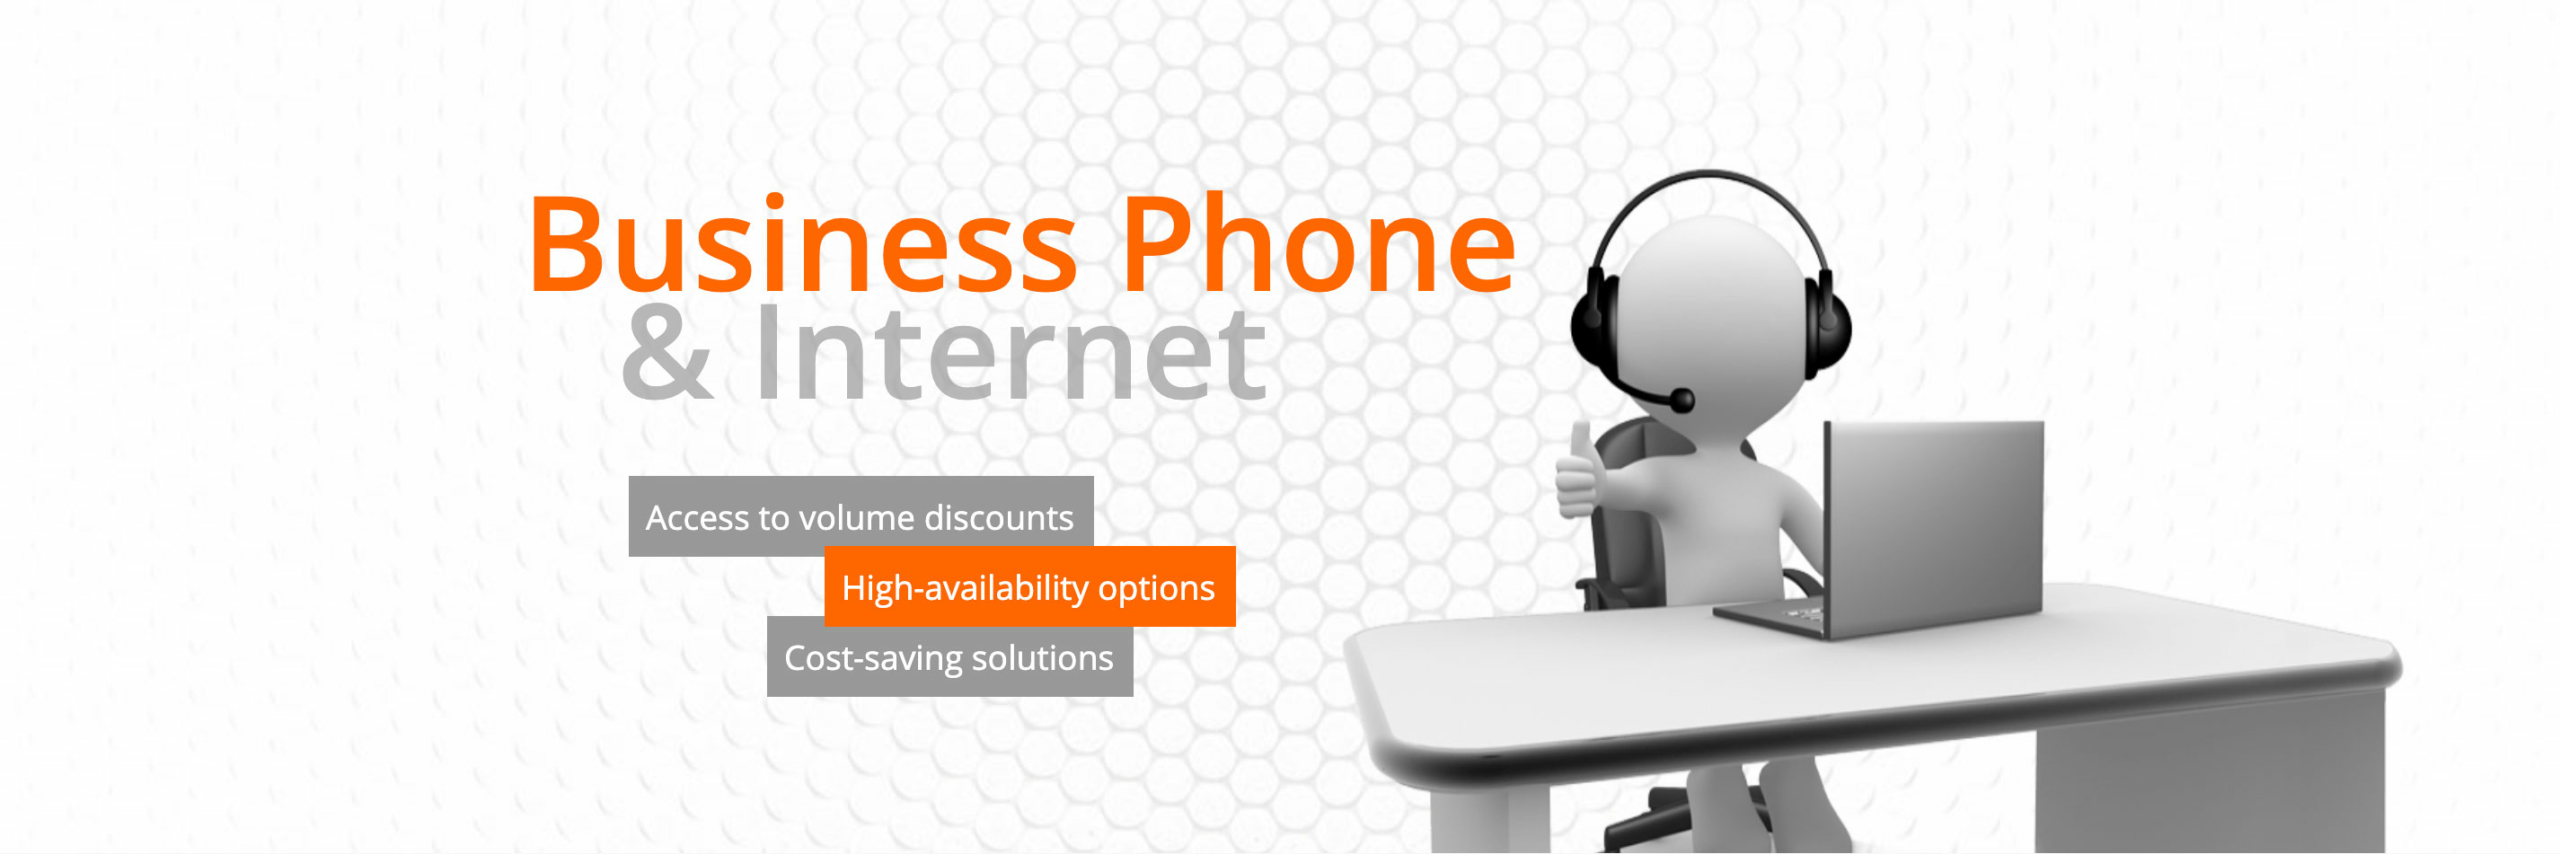 Inc-Sys Business Phone & Internet | High-availability options and cost-saving solutions for your business